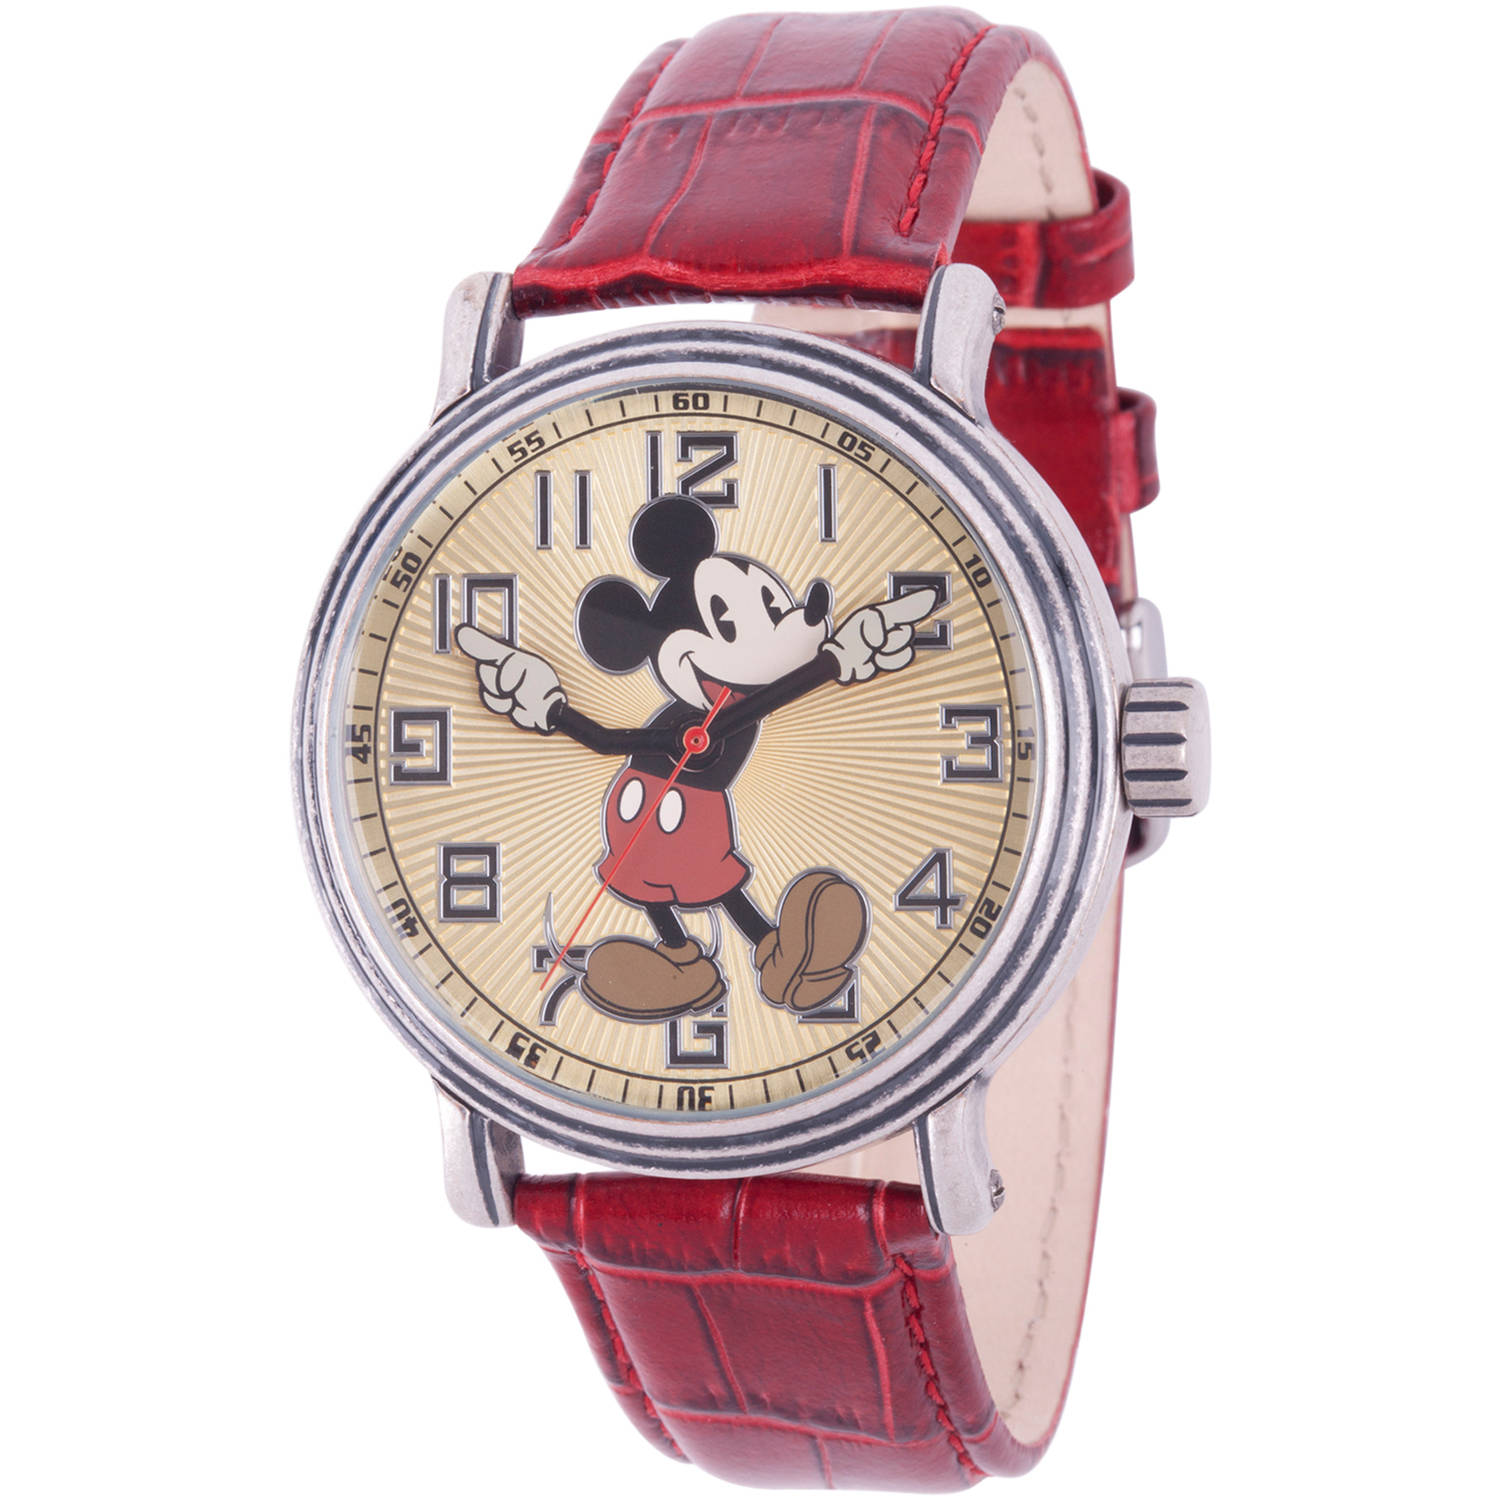 Disney Mickey Mouse Men's Antique Silver Vintage Alloy Watch, Red Leather Strap